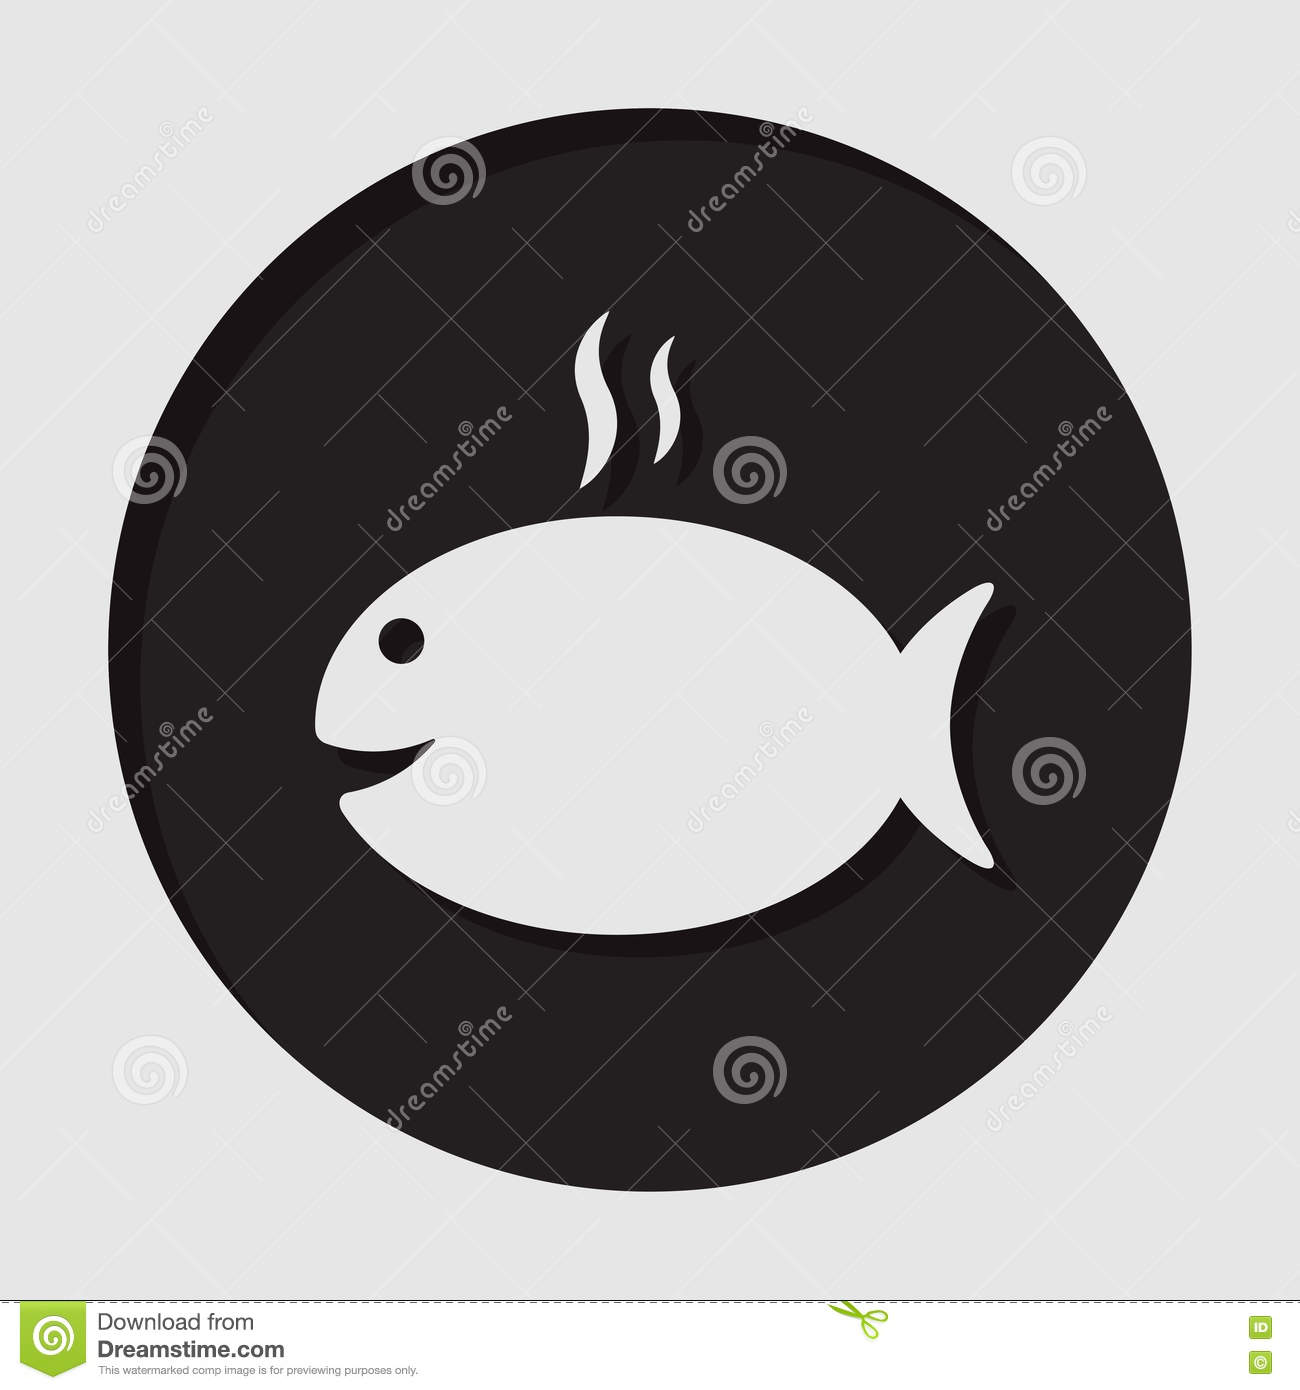 Information icon - grilling fish with smoke